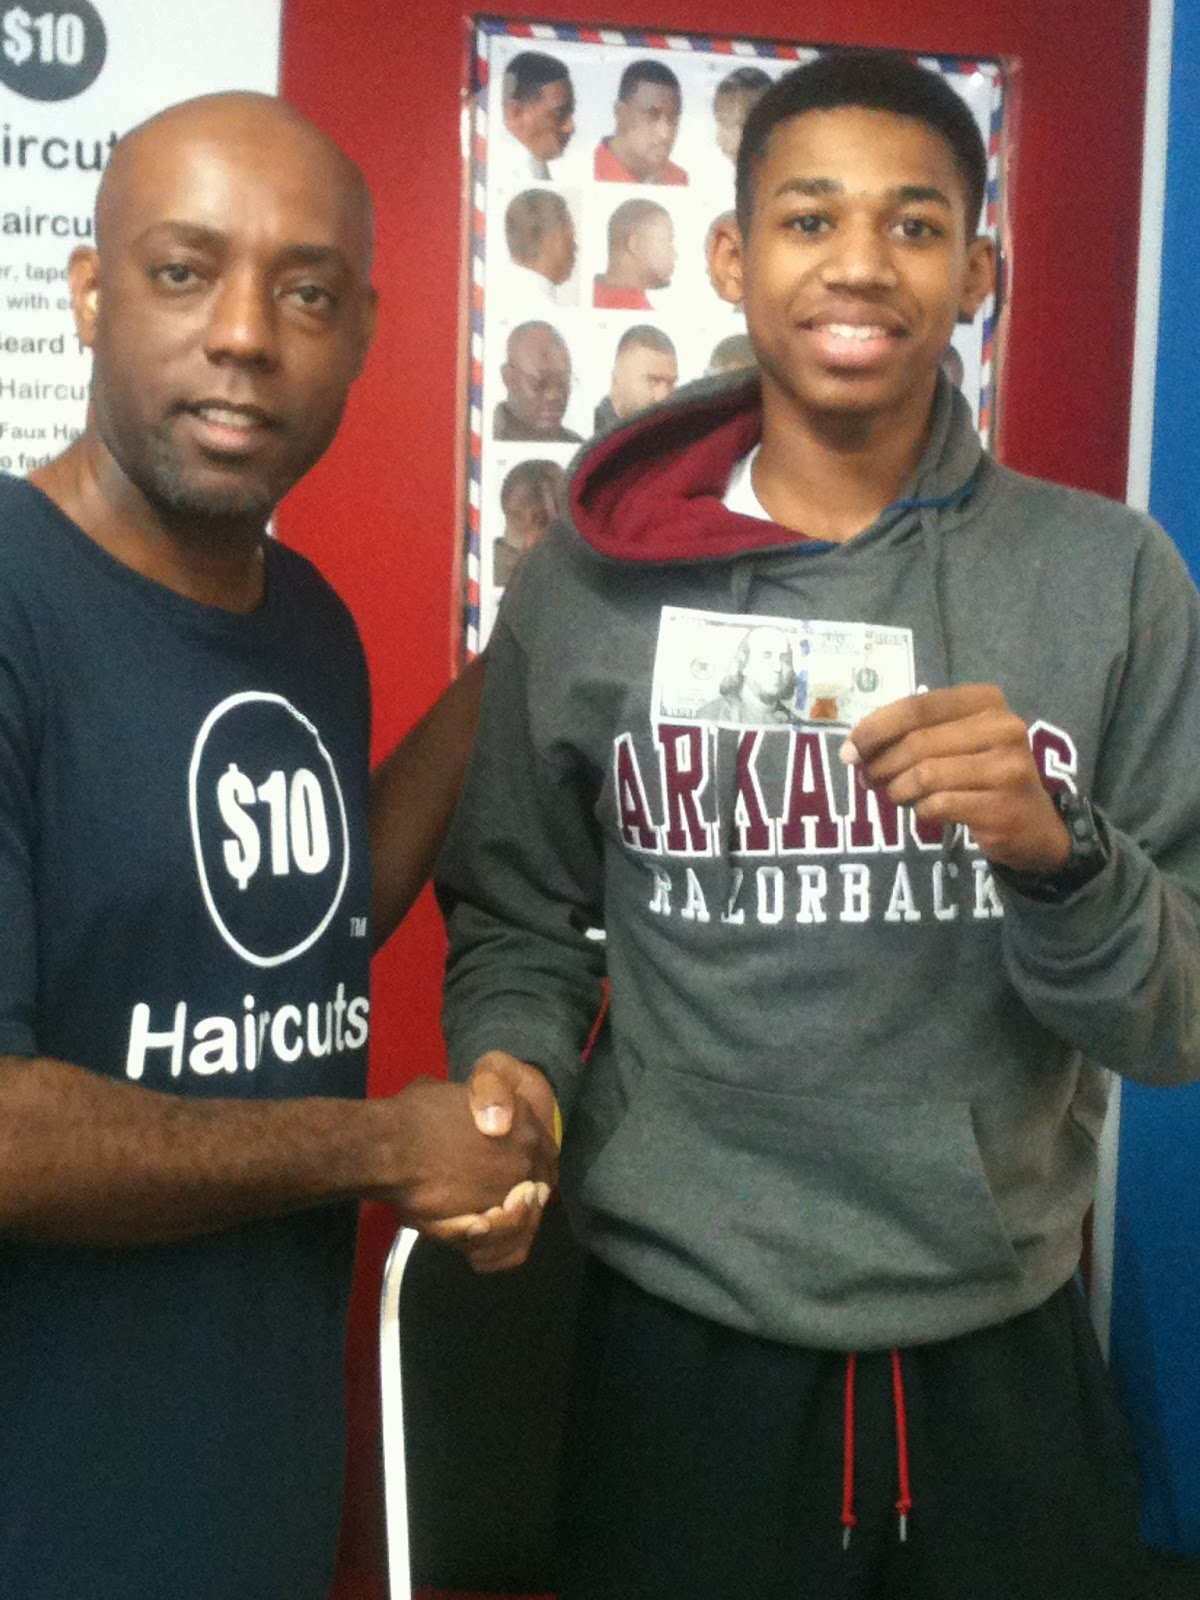 New 10 Dollar Haircuts 76011 100 00 Cash Goes To Julius Ideas With Pictures Original 1024 x 768